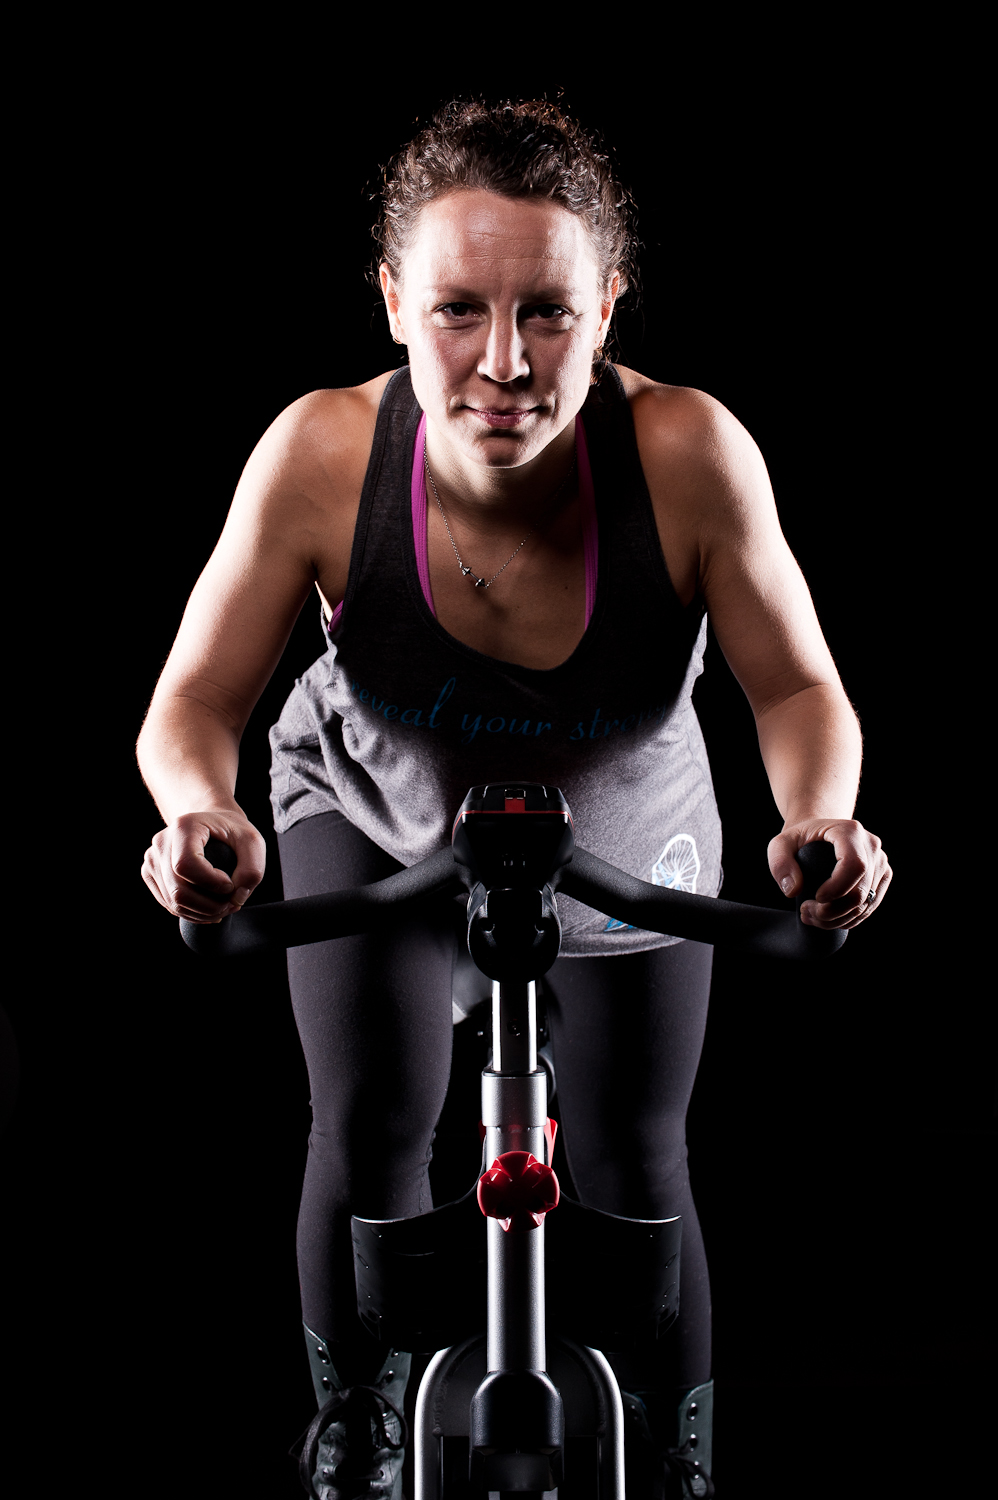 sean-williams-soulspin-cycle-fitness-photographer-commercial-edmonton-canada-4.jpg